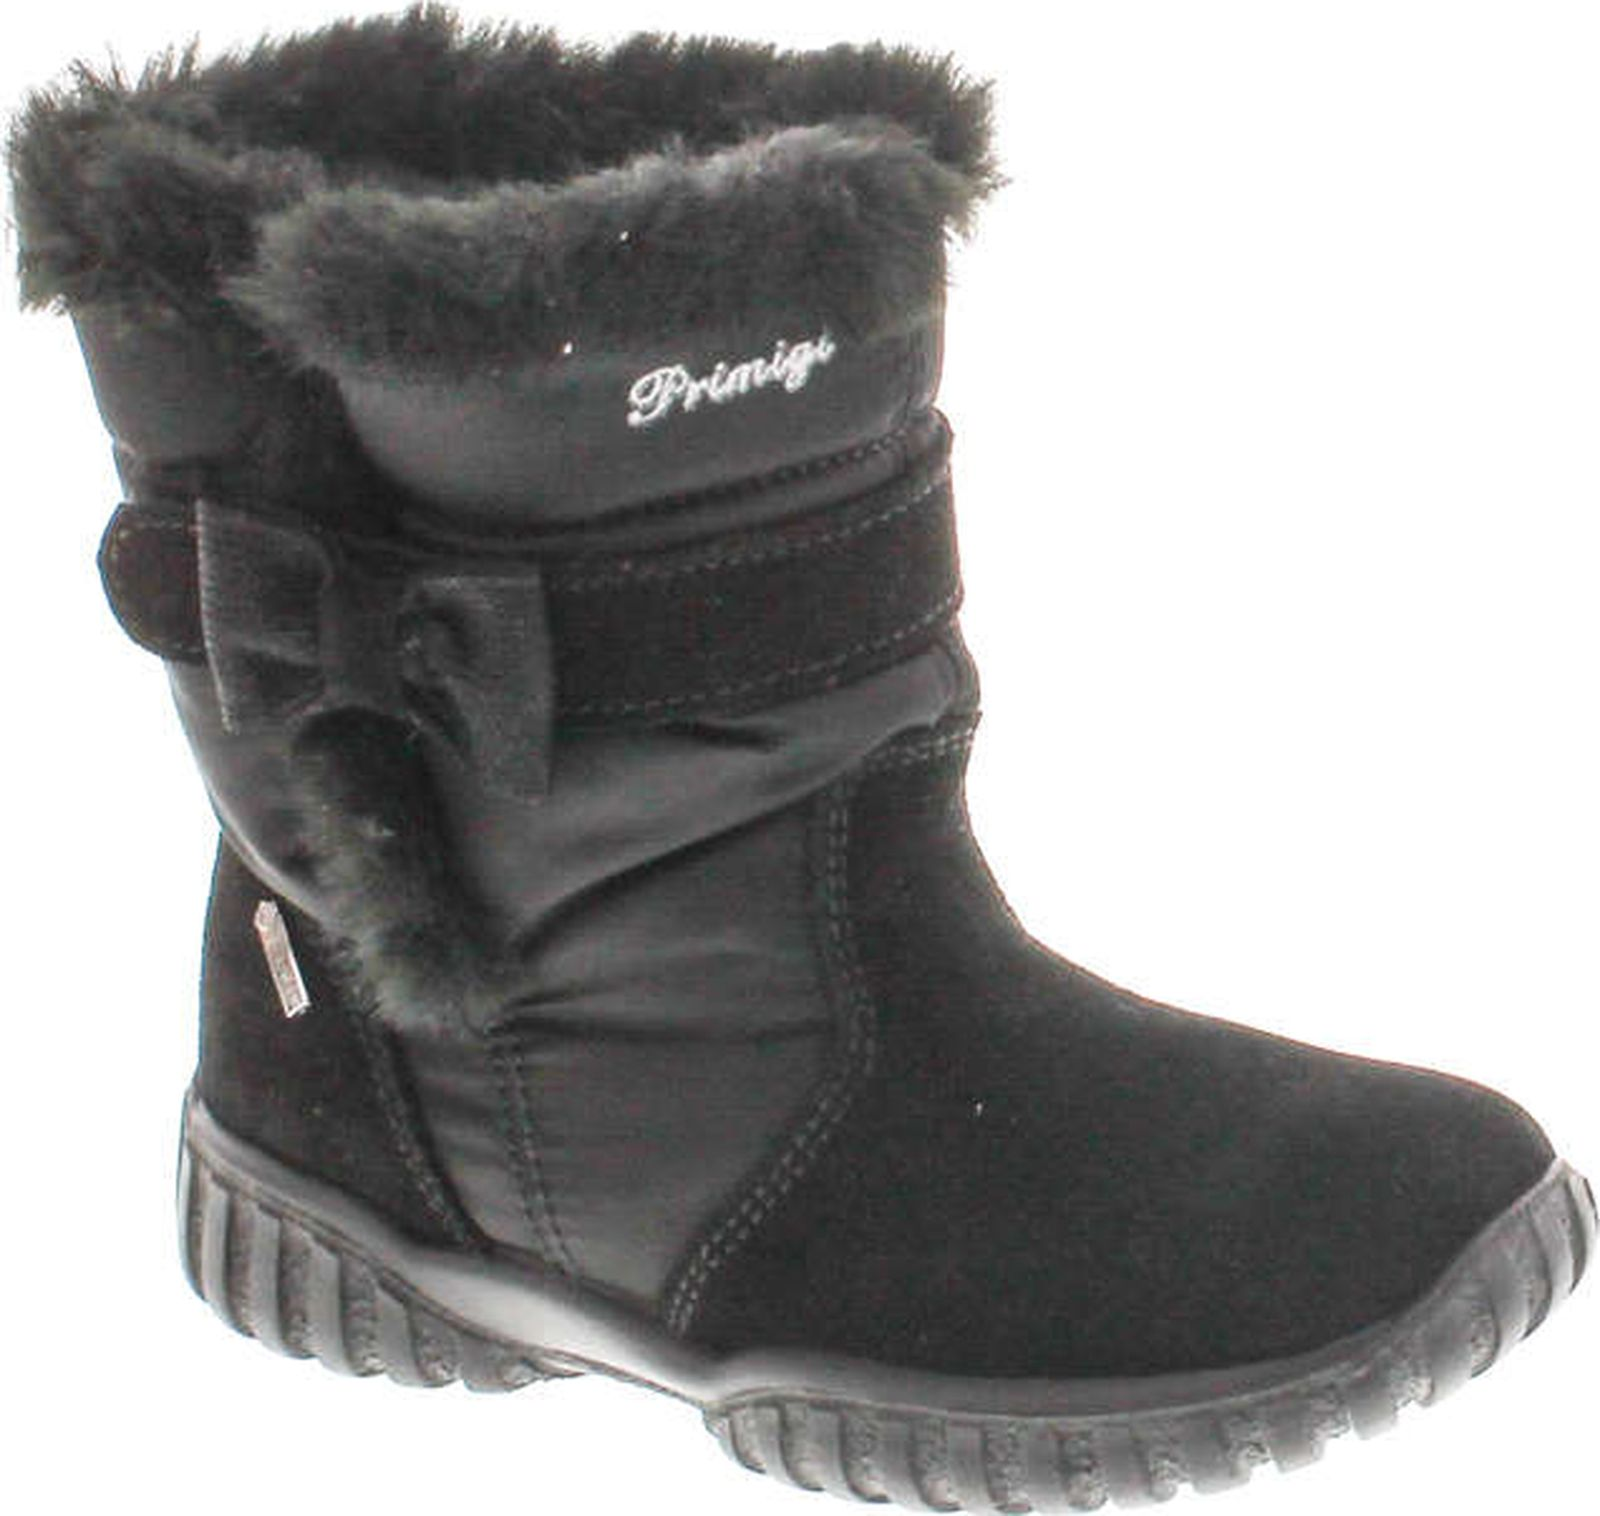 Primigi Girls 8594 Gore Tex All Weather Winter Boots by Primigi